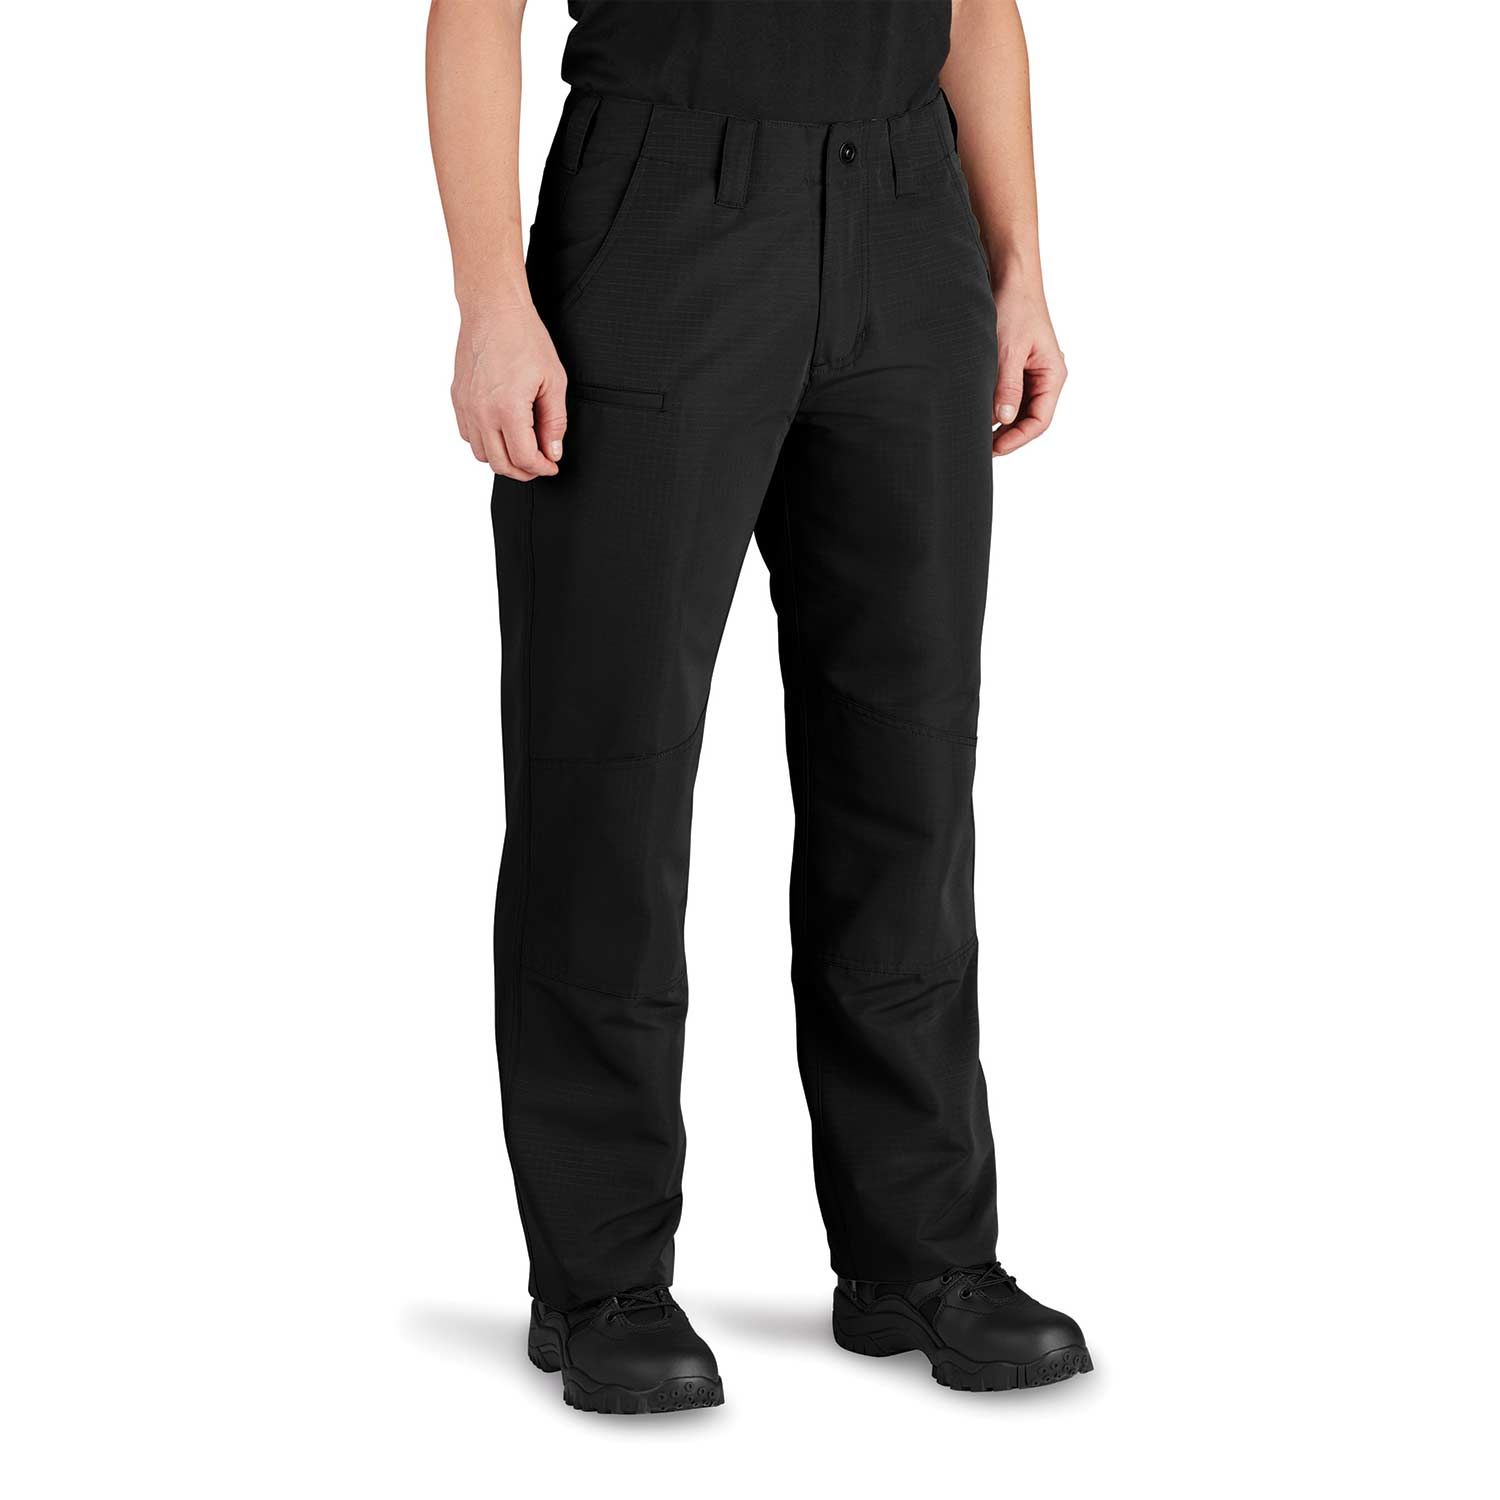 PROPPER Womens EdgeTec Slick Tactical Pant